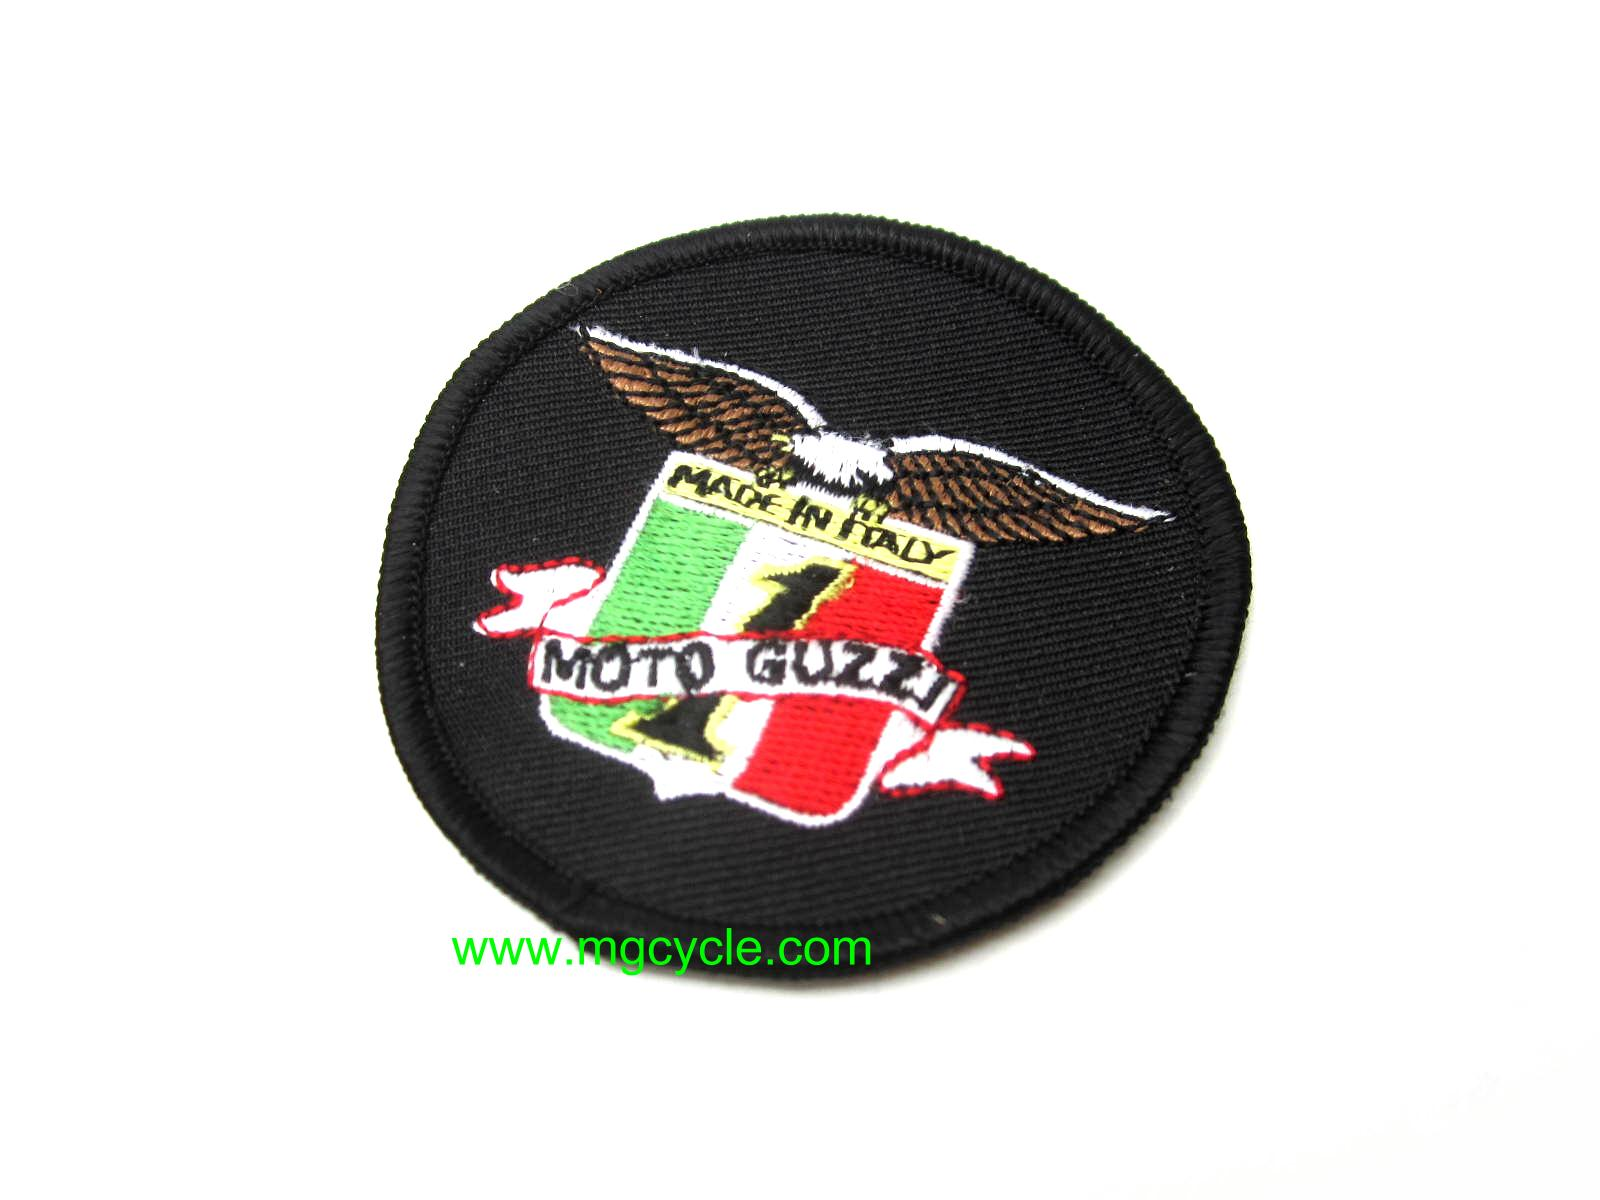 """Made in Italy, Moto Guzzi #1"" patch"